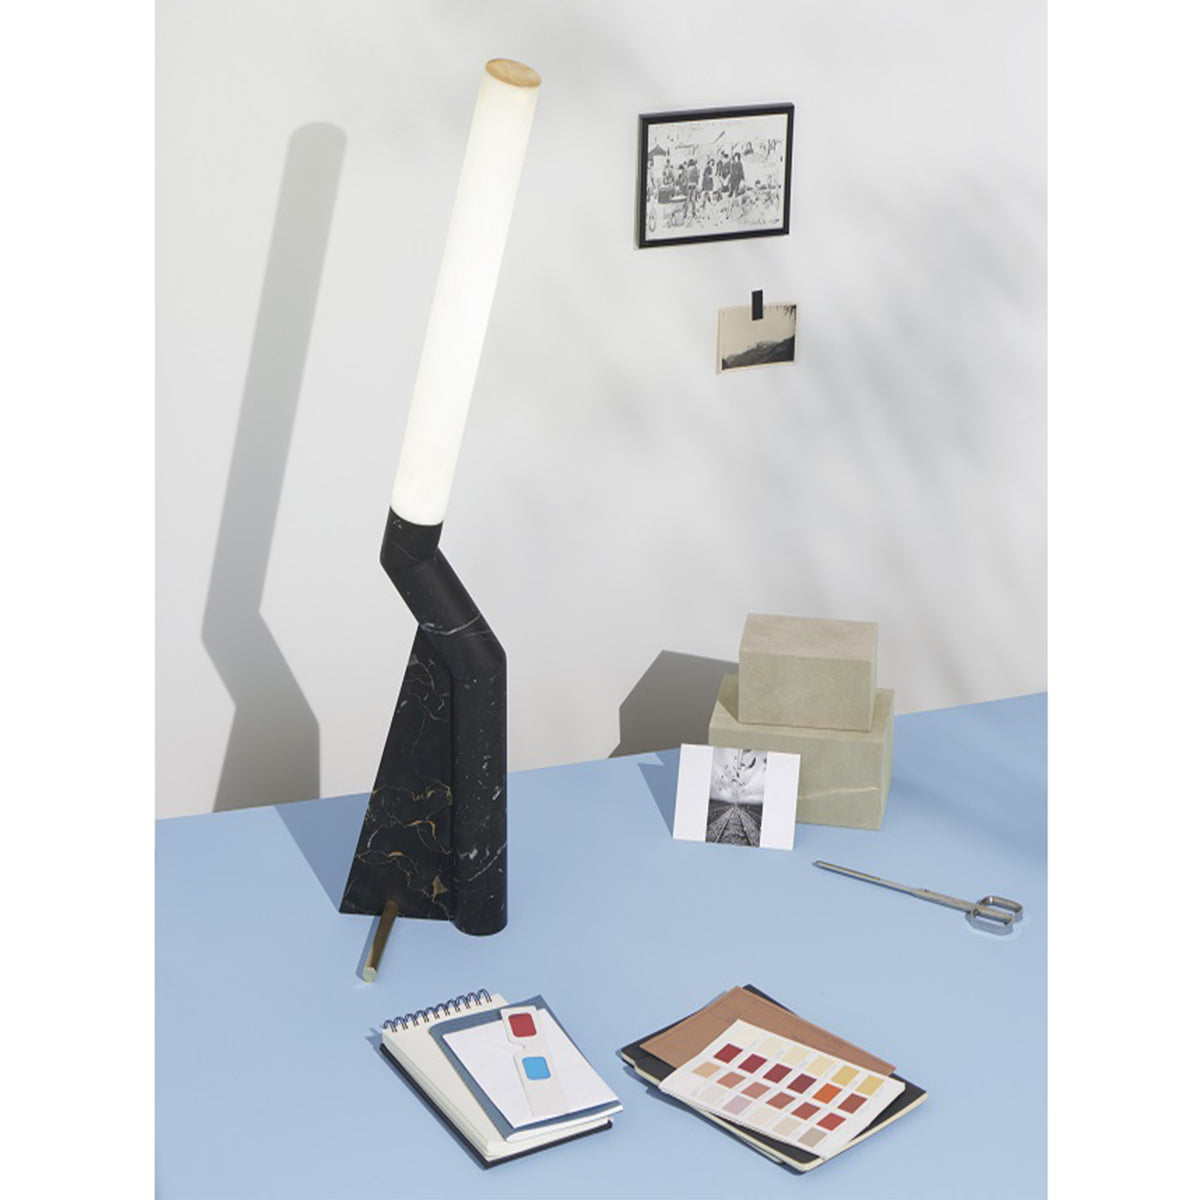 HERON, table lamp, Mmairo  - SORS